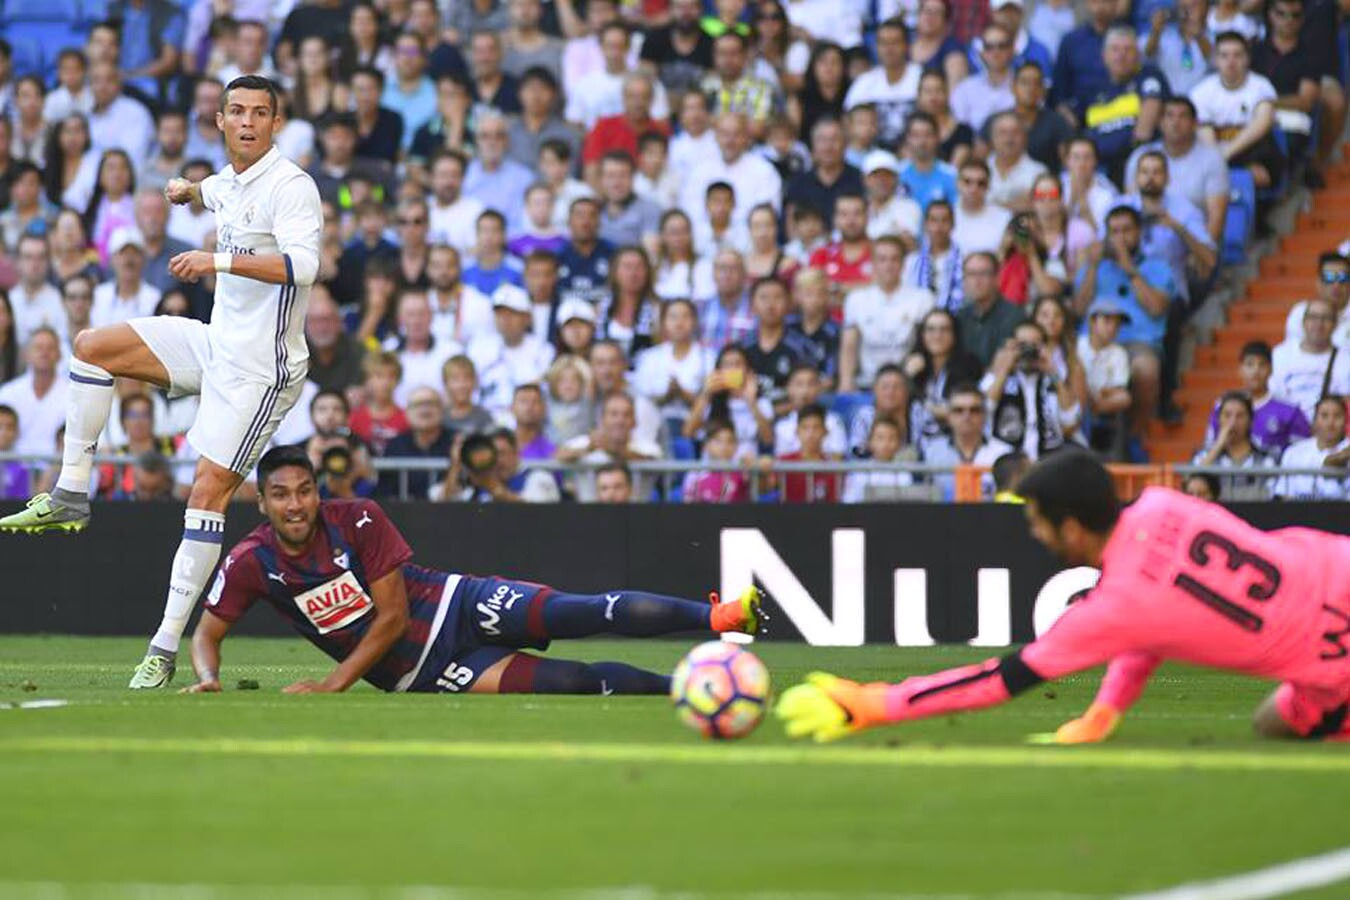 La Liga: Real Madrid 1-1 Eibar